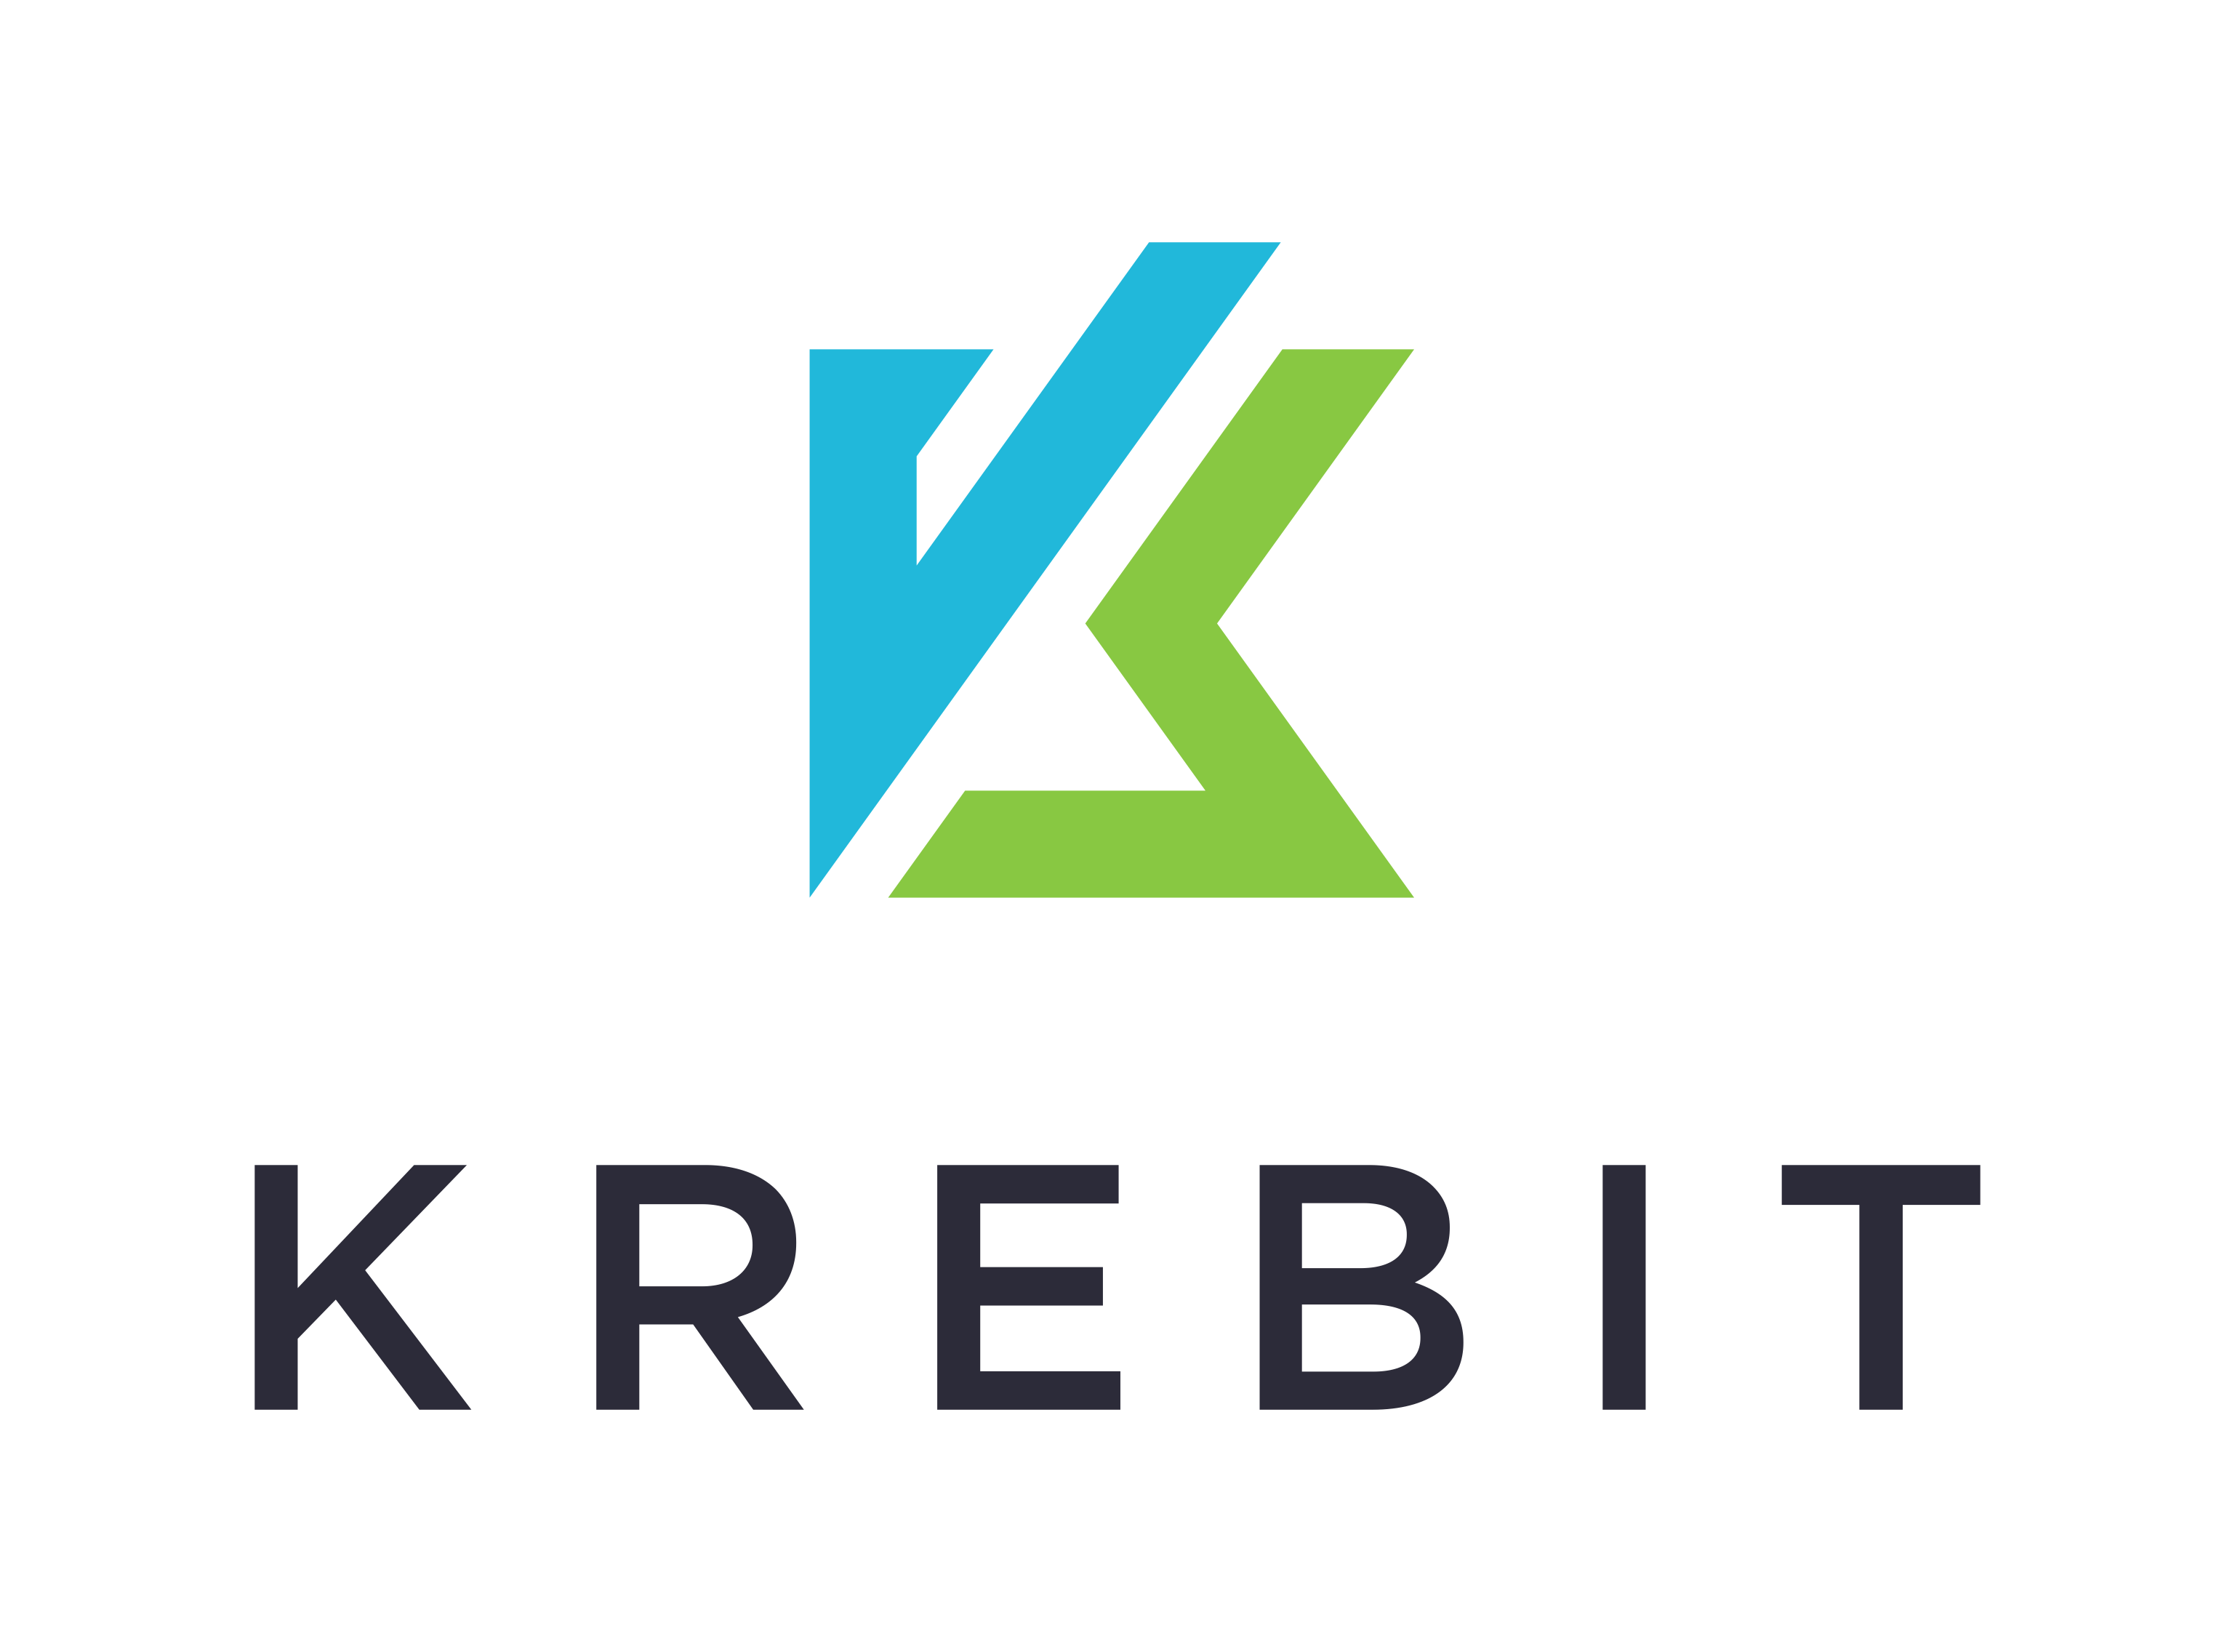 Krebit - accounting and client management for young Dutch entrepreneurs